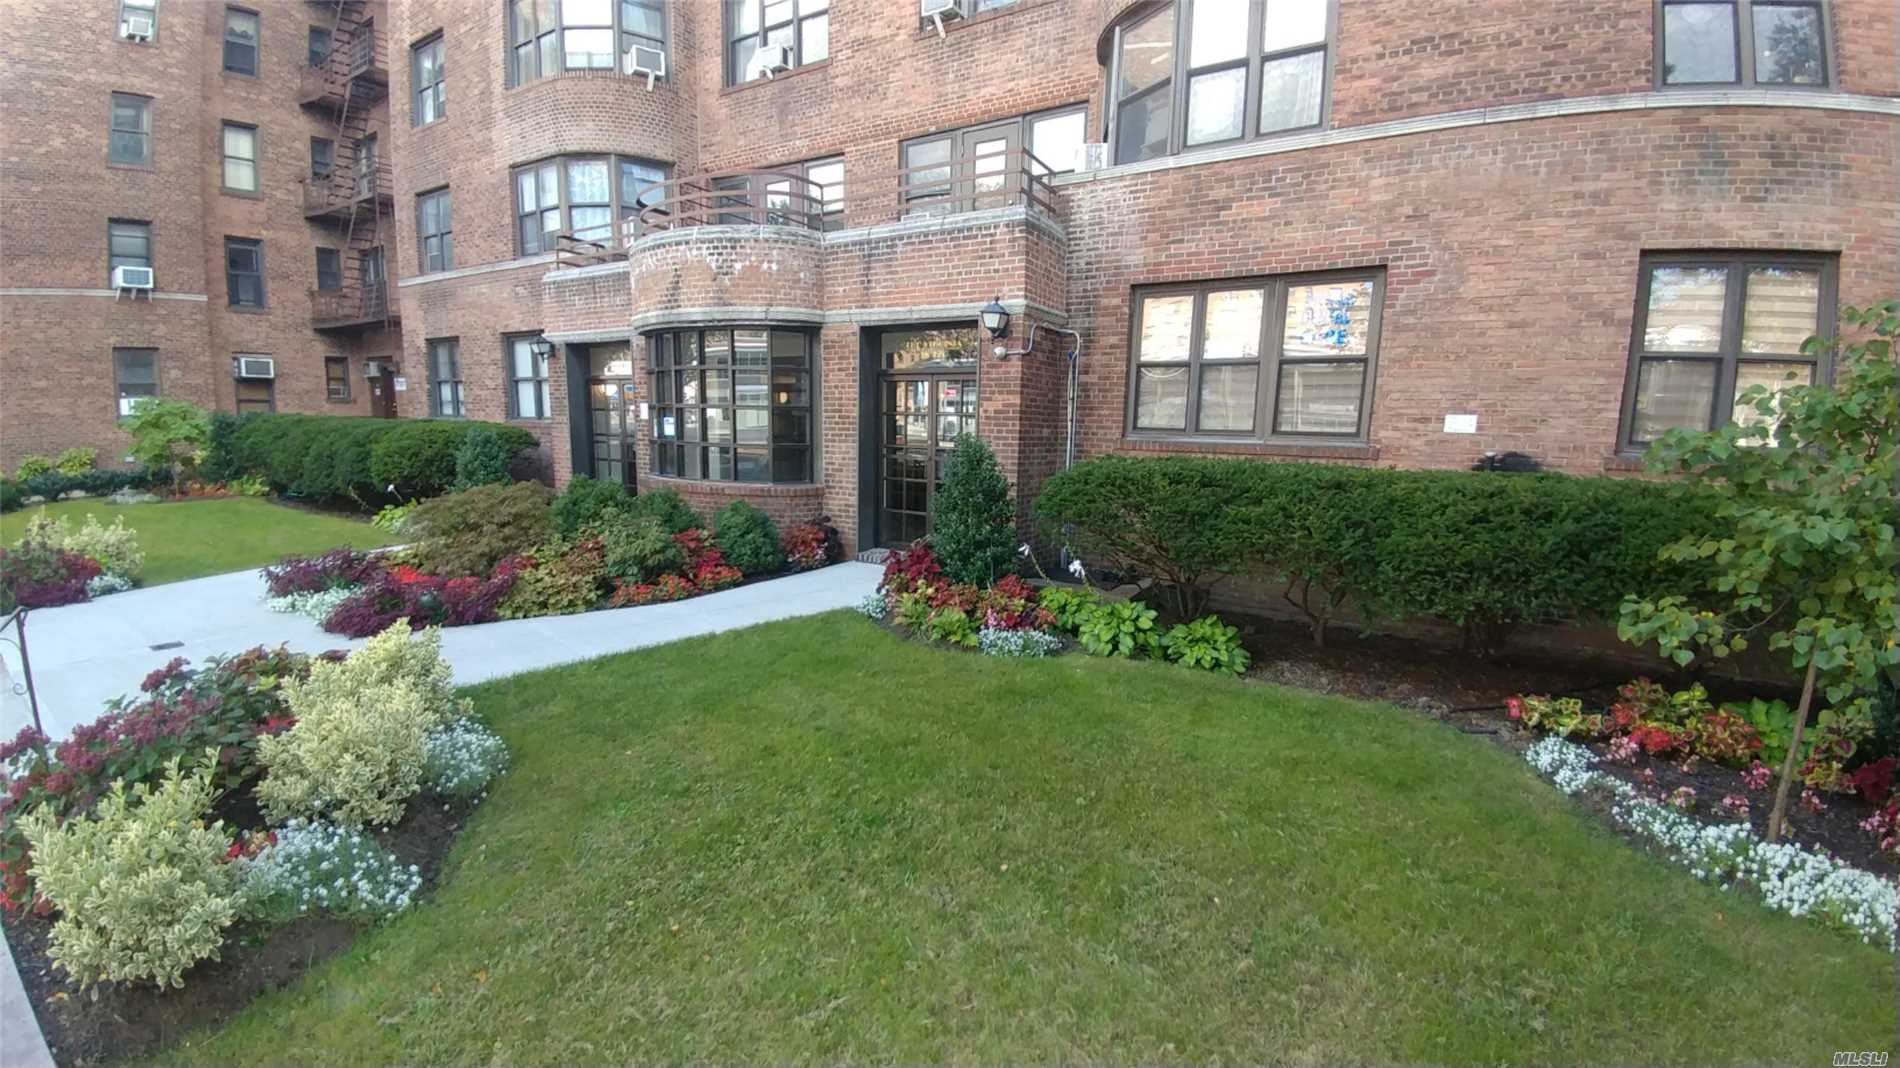 Huge Renov Pet Friendly Prewar 2Br Prime Location, 1/2 Blk To Subway. High Floor, Sunny & Bright. Pre-War Grandeur & Charm, Towering High Ceilings, Huge Wide Rooms, Inlaid Hardwood Floors, Beautiful Crown Moldings, Generous Deep Closet Space. Lg Dining Area, King Size Liv Rm, 2 Xlg Master Br's, Renov Lg Eik, Ss Appliances, Granite Bath. Can Be Sublet. New Lobby. New Roof